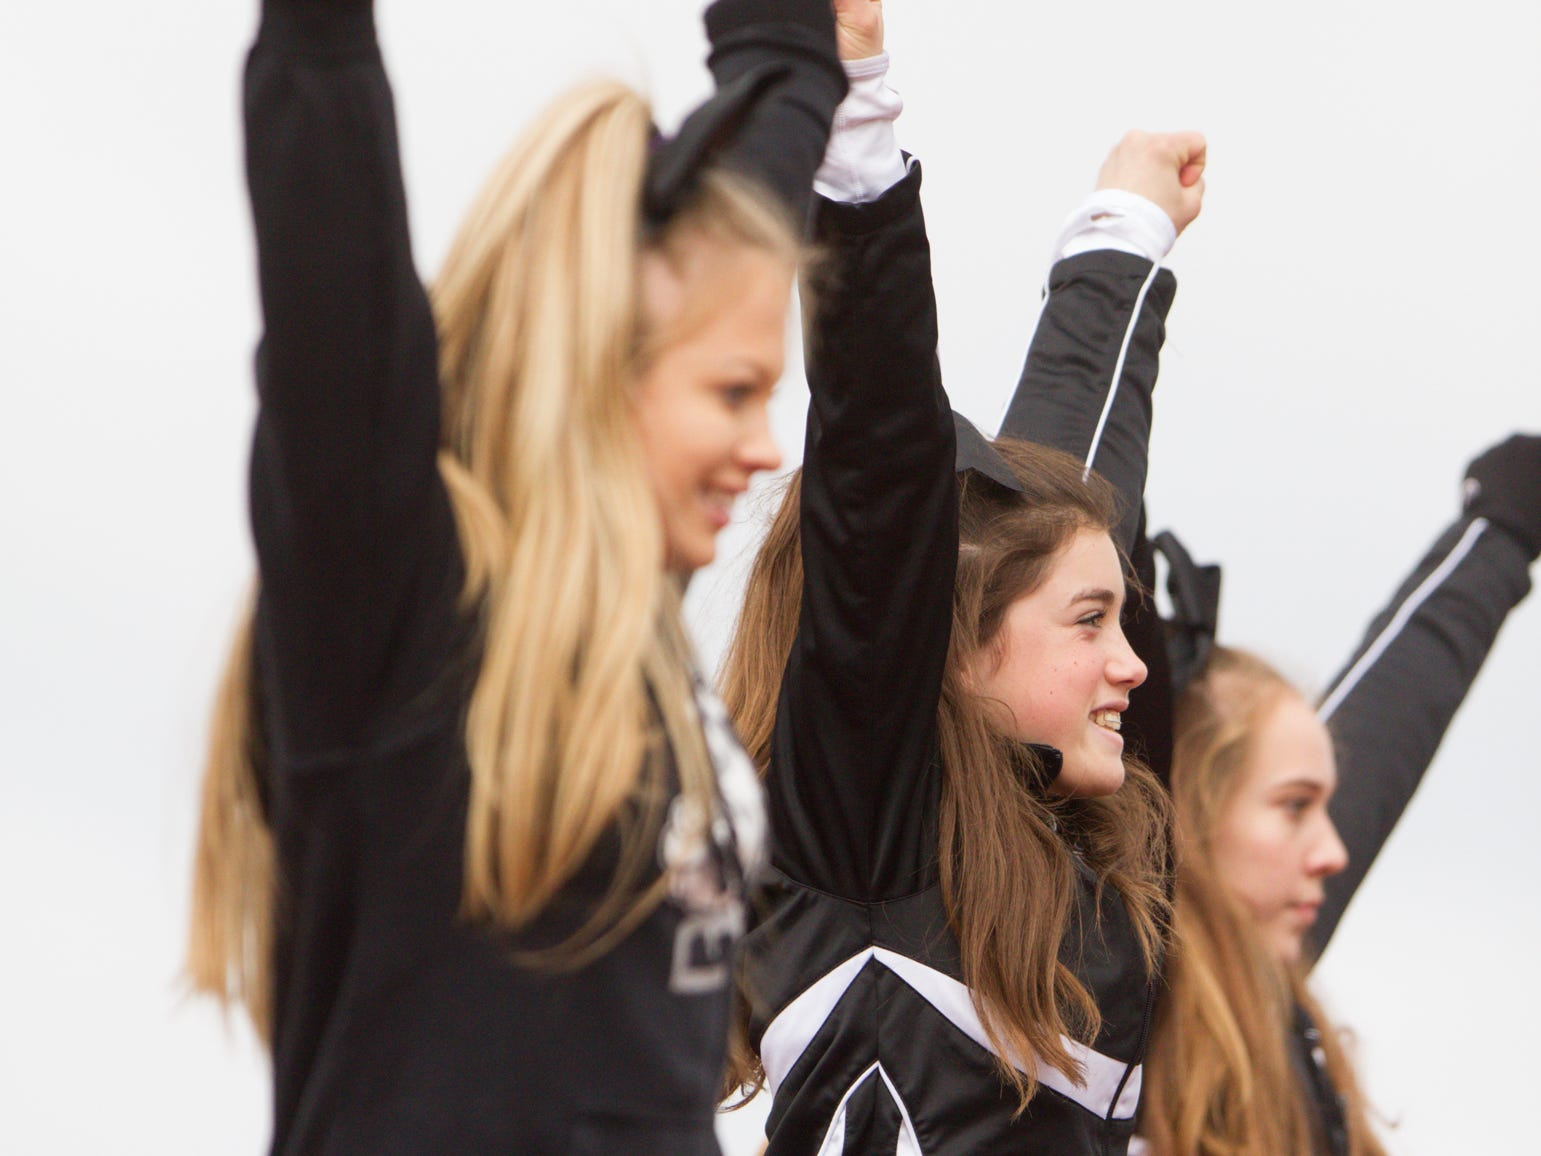 From left, Brighton cheerleaders Lexi Maximoff, Riley Harvill and Grace Anthony get the spirit going at the playoff game at East Kentwood Saturday, Oct. 27, 2018.